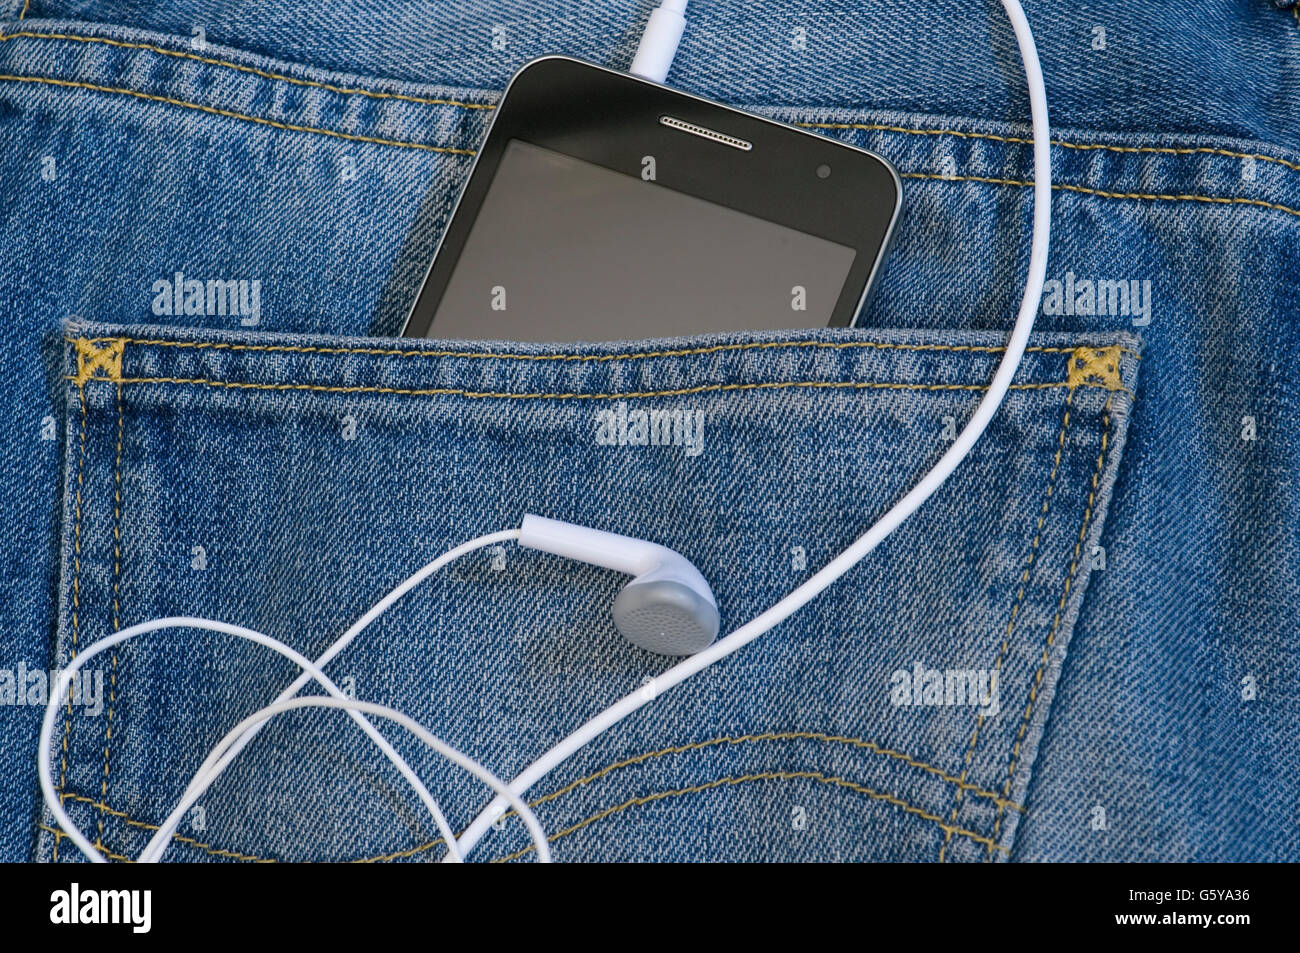 smartphone with earbuds in the back pocket - Stock Image